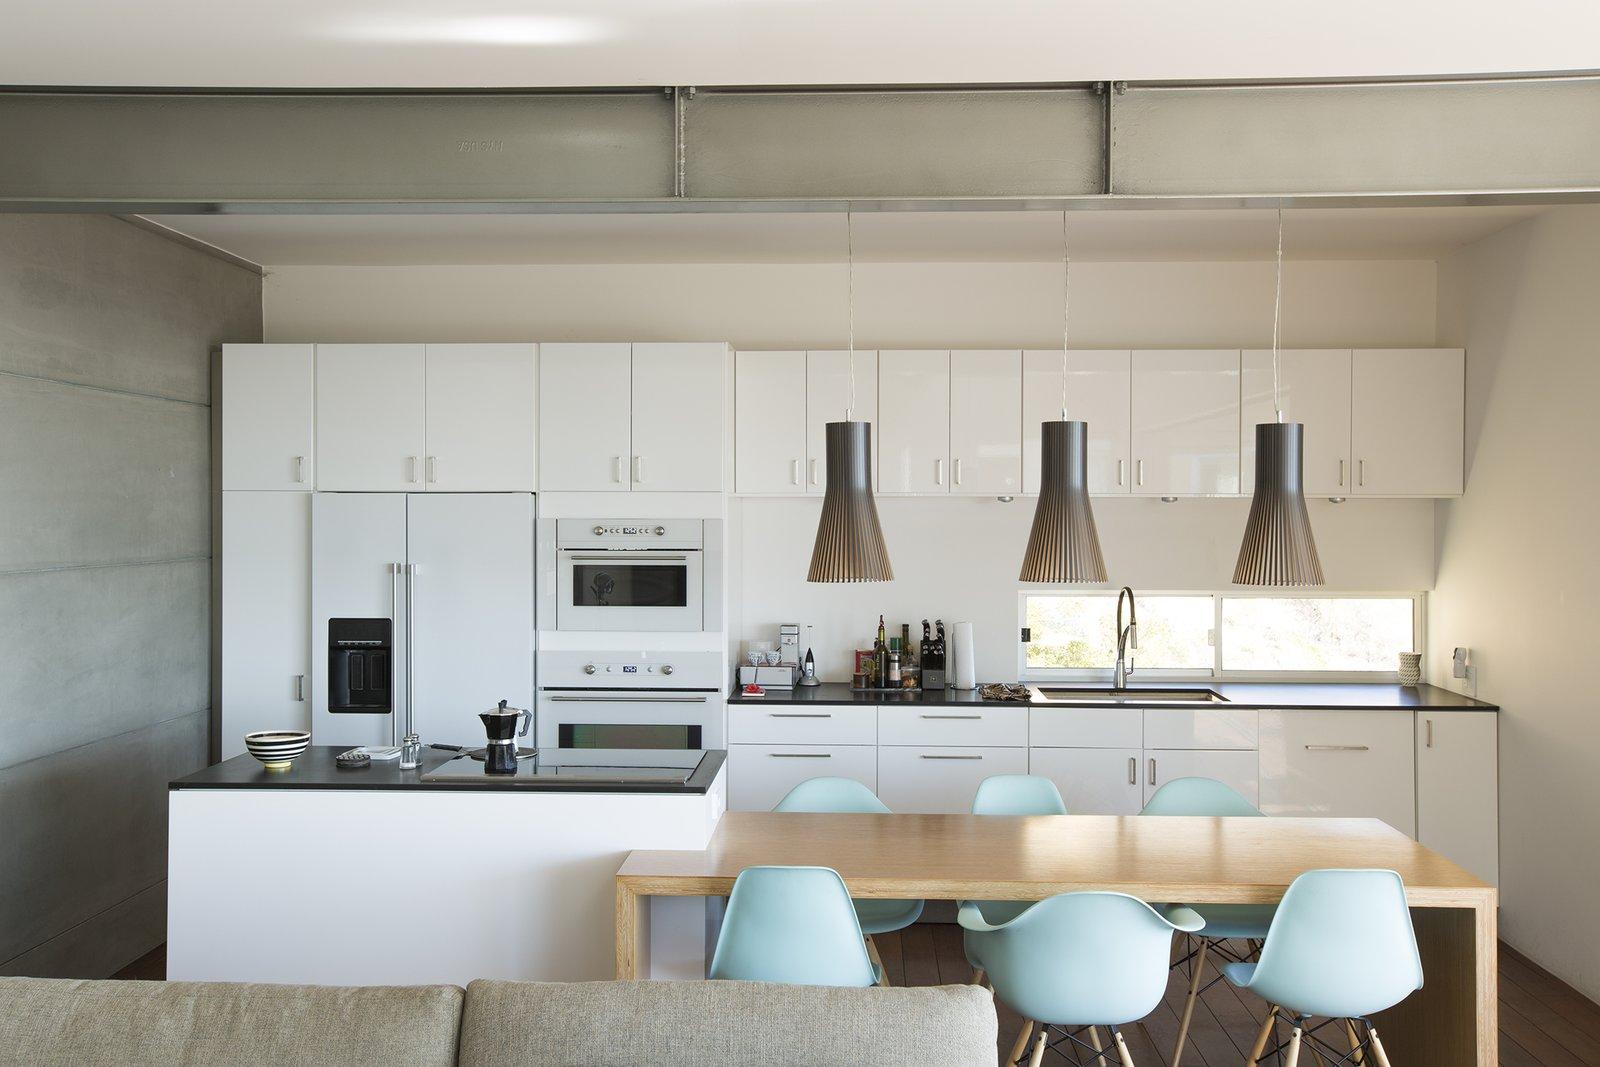 Pendants from Finnish Design Shop light a table by carpenter Leo LaPlante. The Eames chairs are from Design Within Reach.  Photo 3 of 5 in Facing the Elements